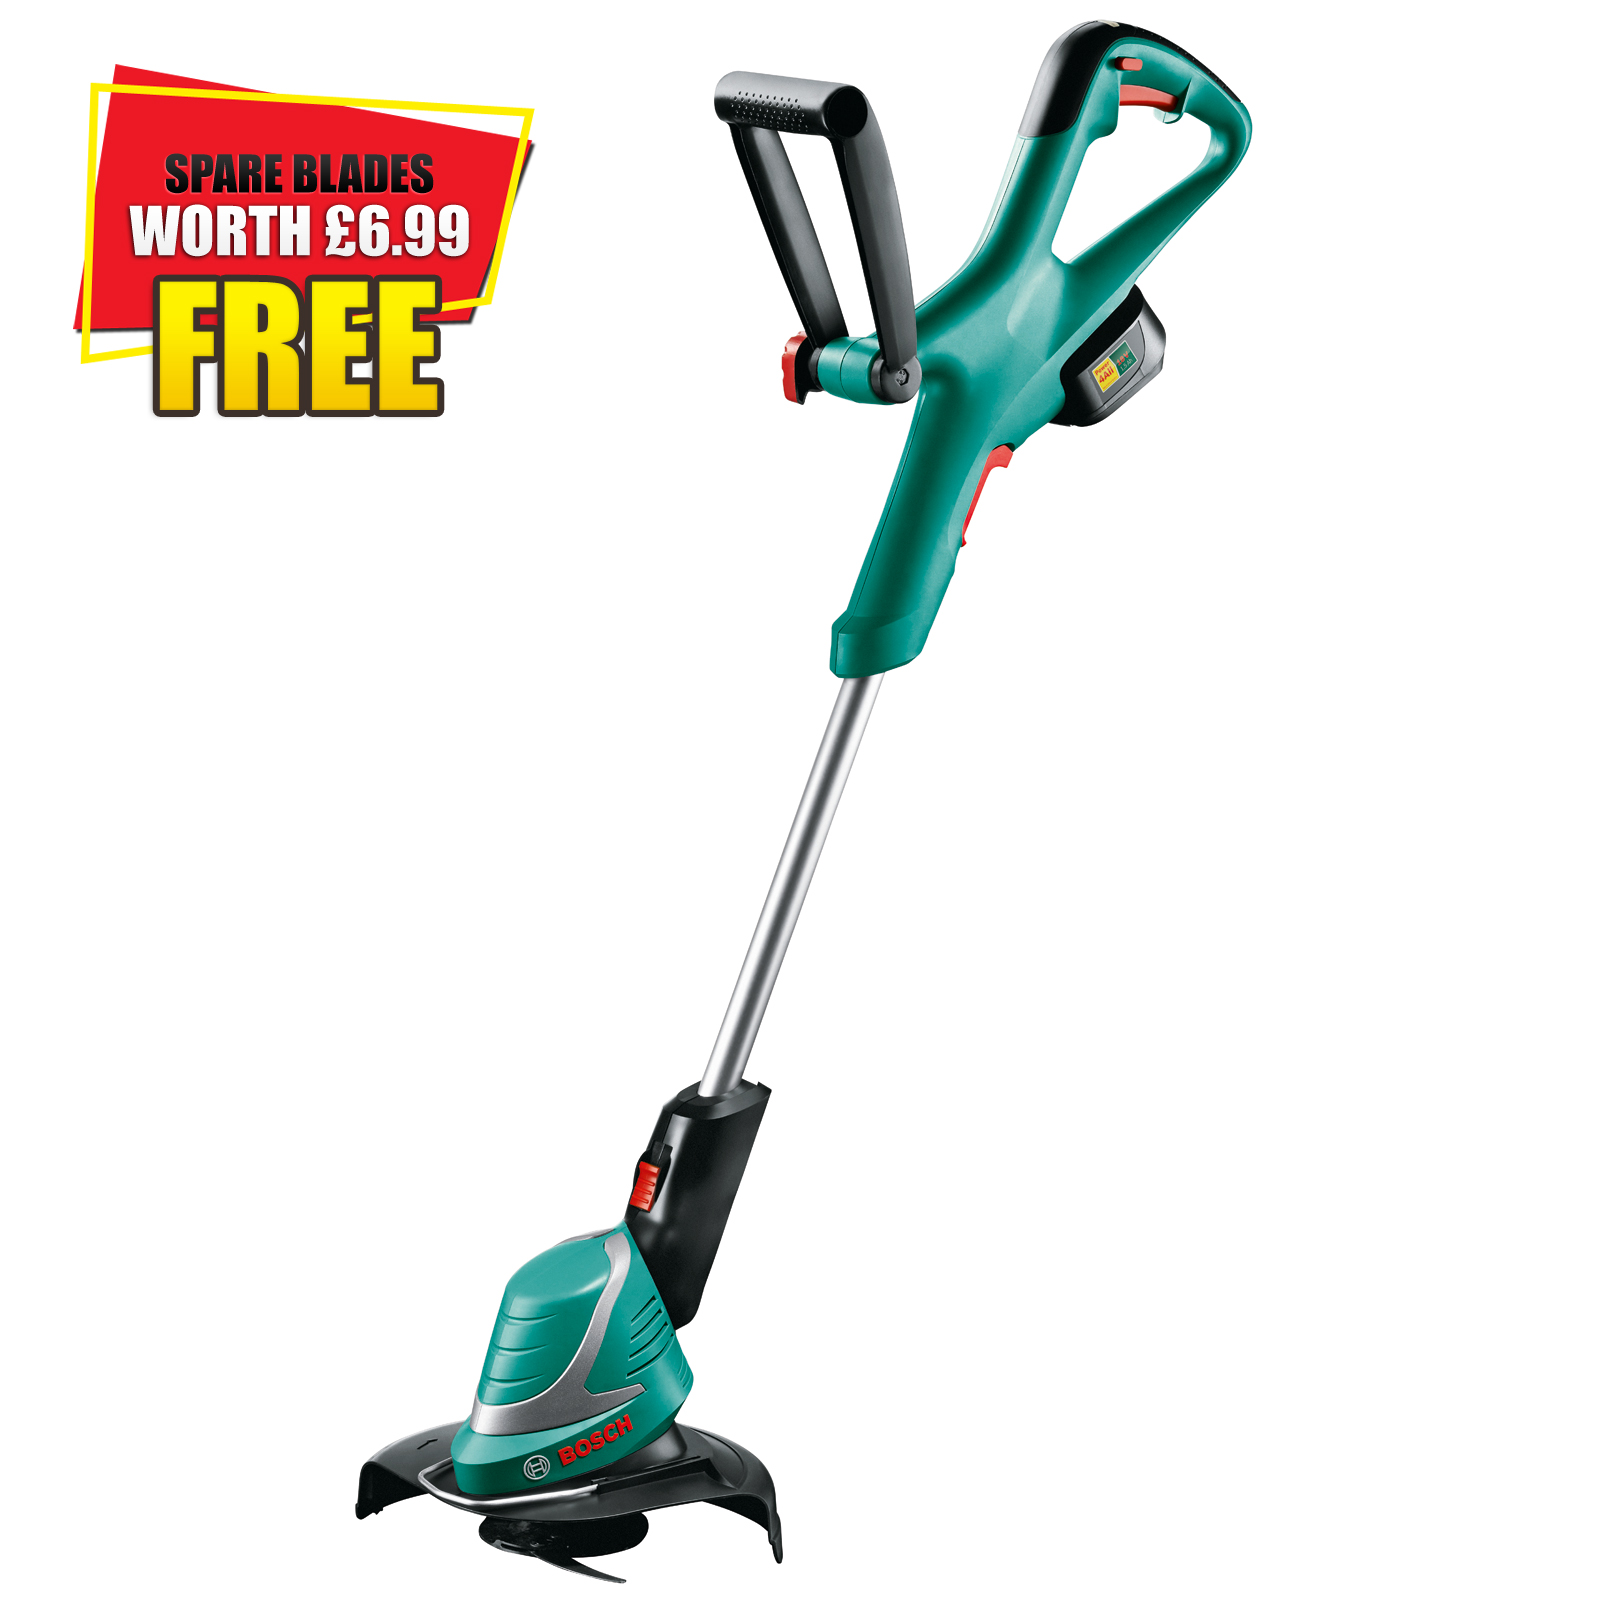 bosch power4all art 26 18 li 18v cordless grass trimmer 260mm cut width with 1 lithium ion battery 1 5ah with pack of extra blades worth 6 99 bosch